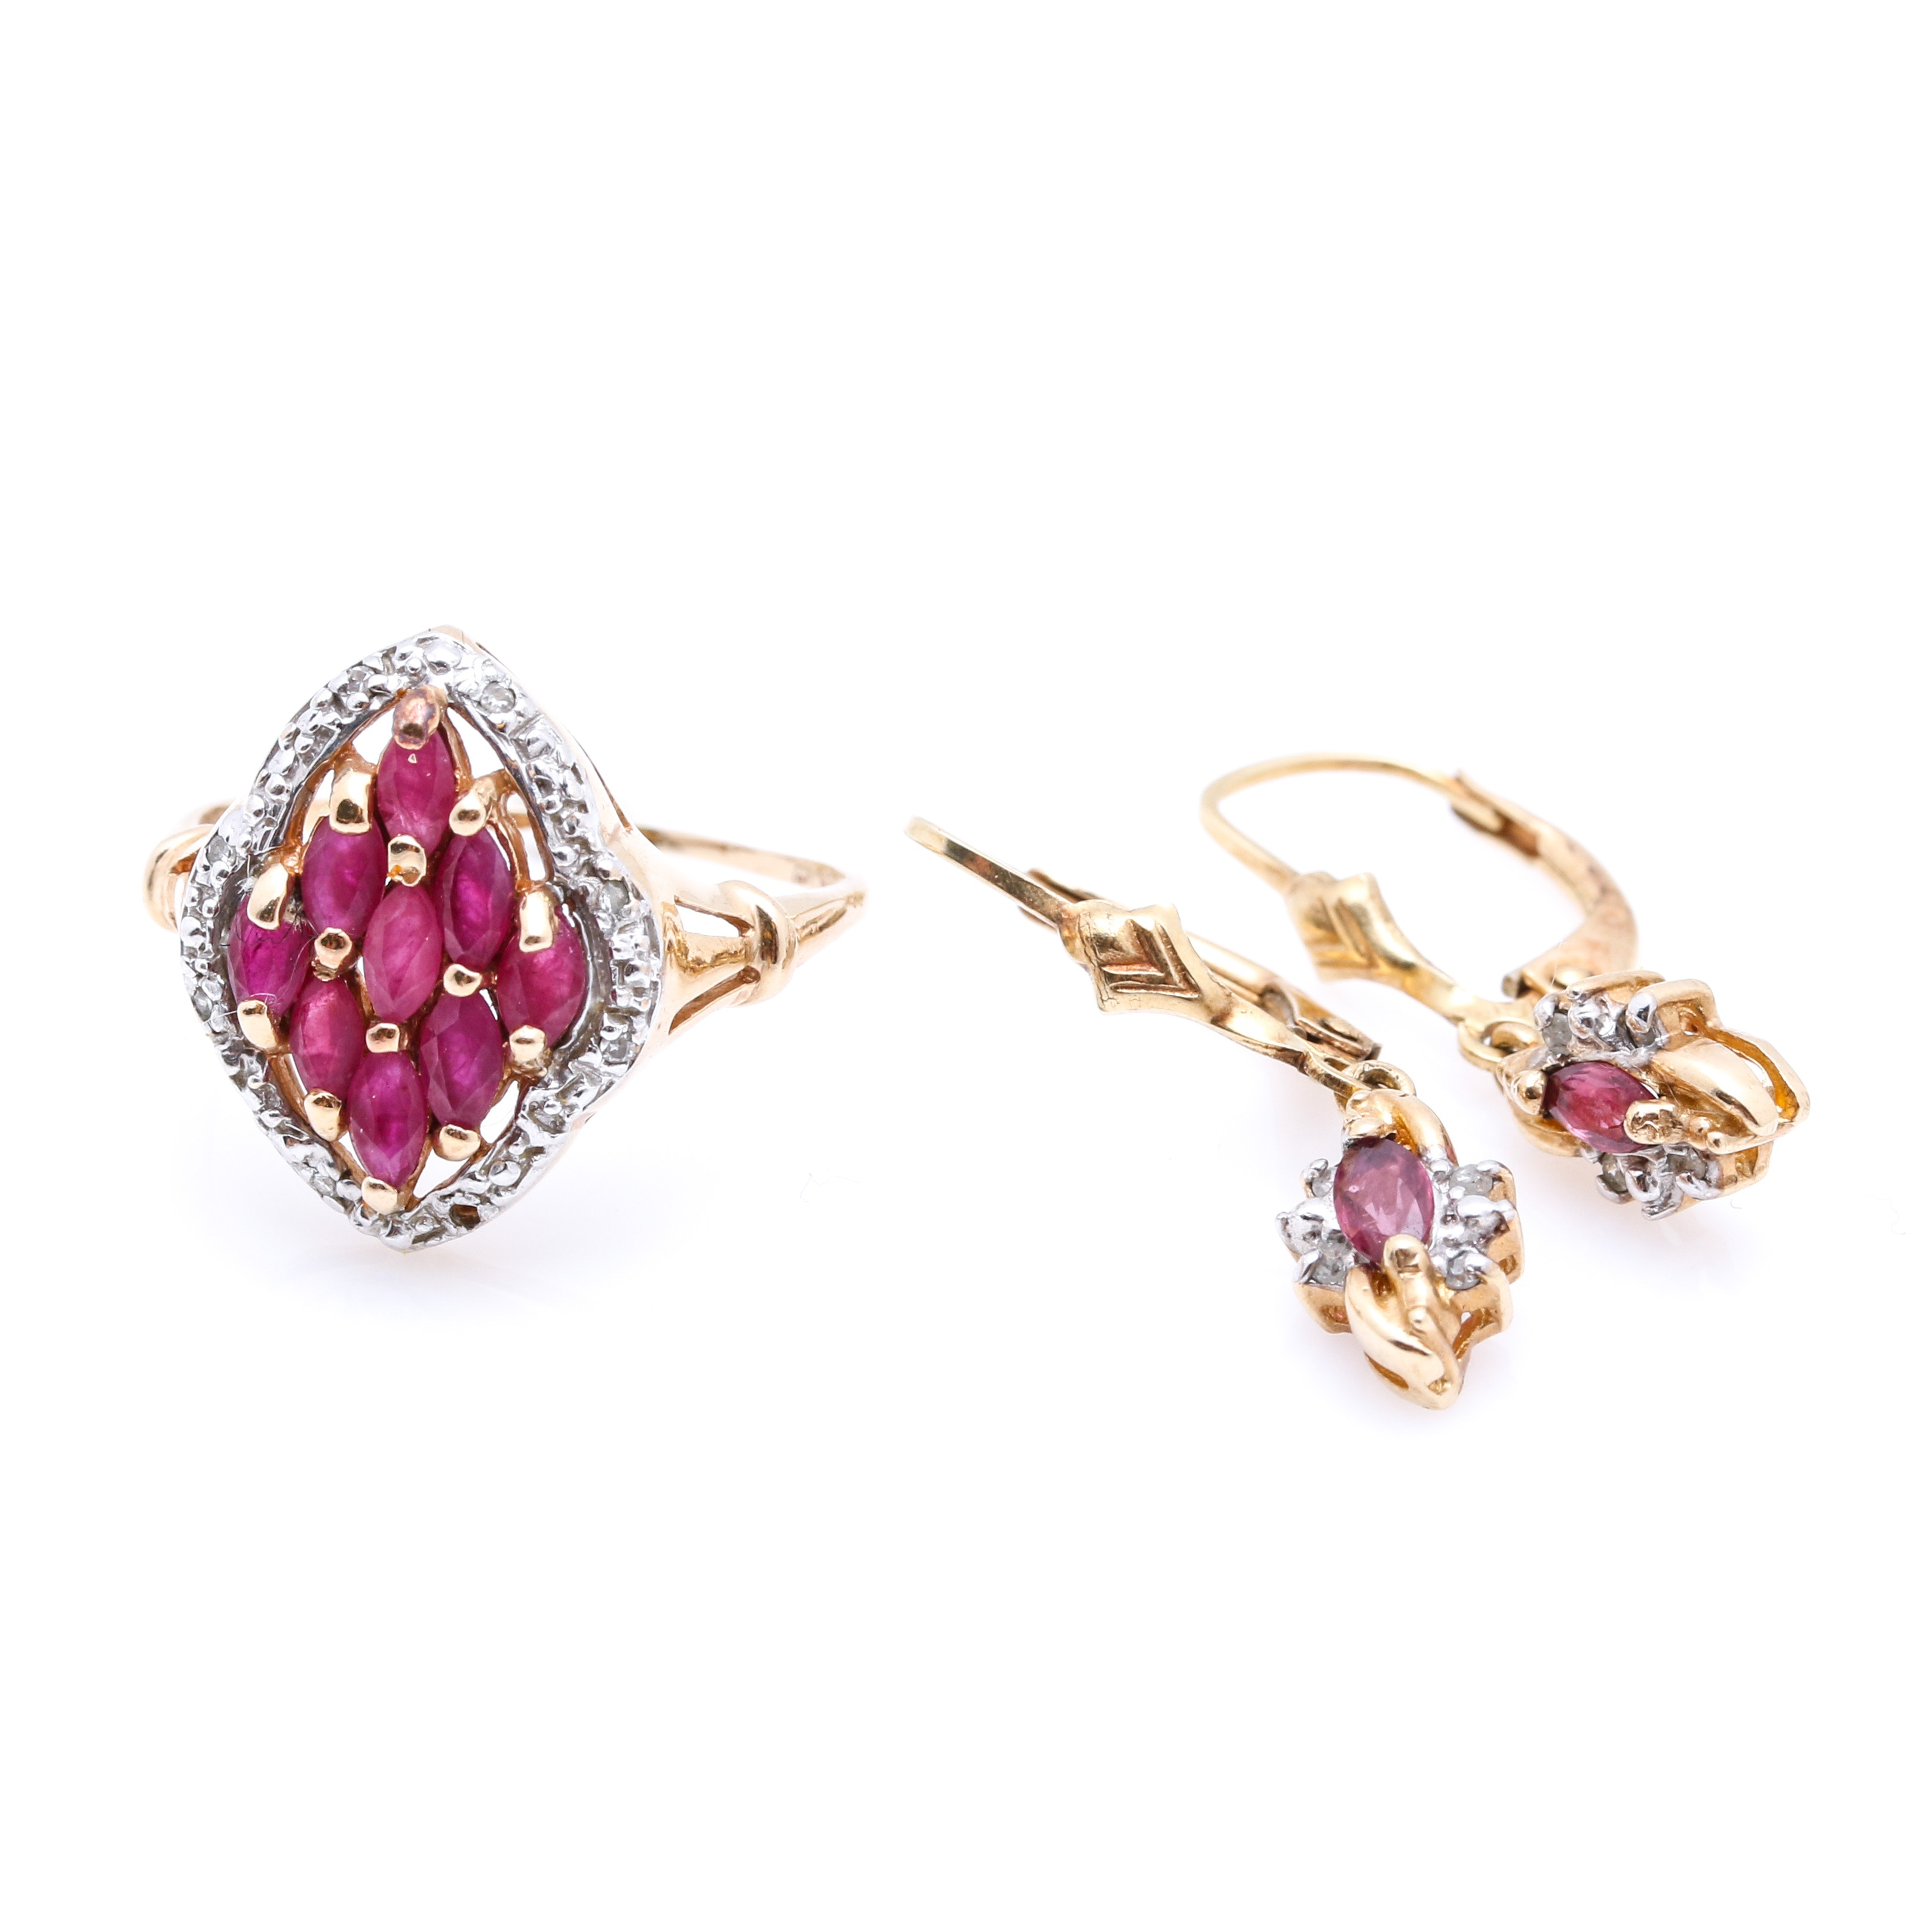 10K Yellow Gold Ruby and Diamond Ring and Earrings Set